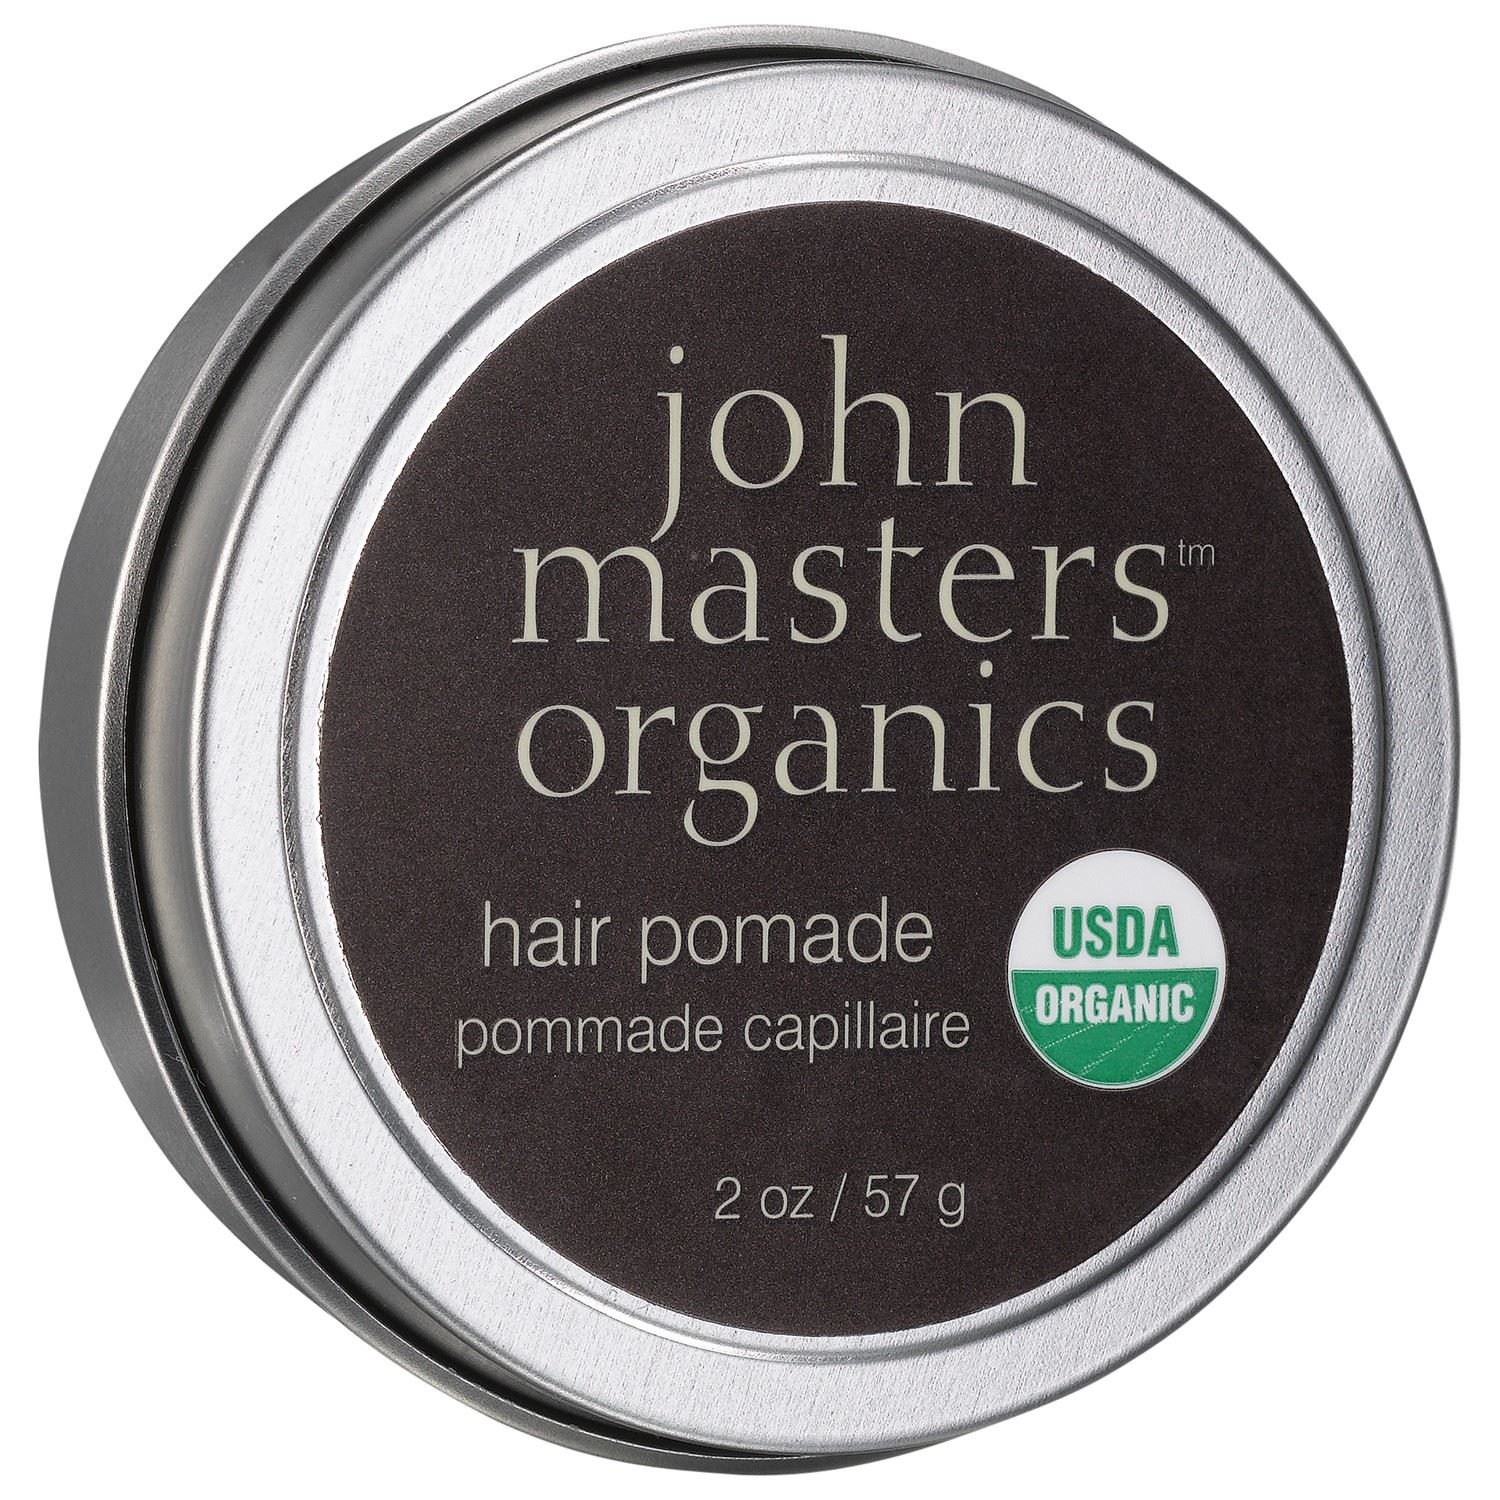 John Masters Hair Pomade 57g (PACK OF 4) by John Masters (Image #1)